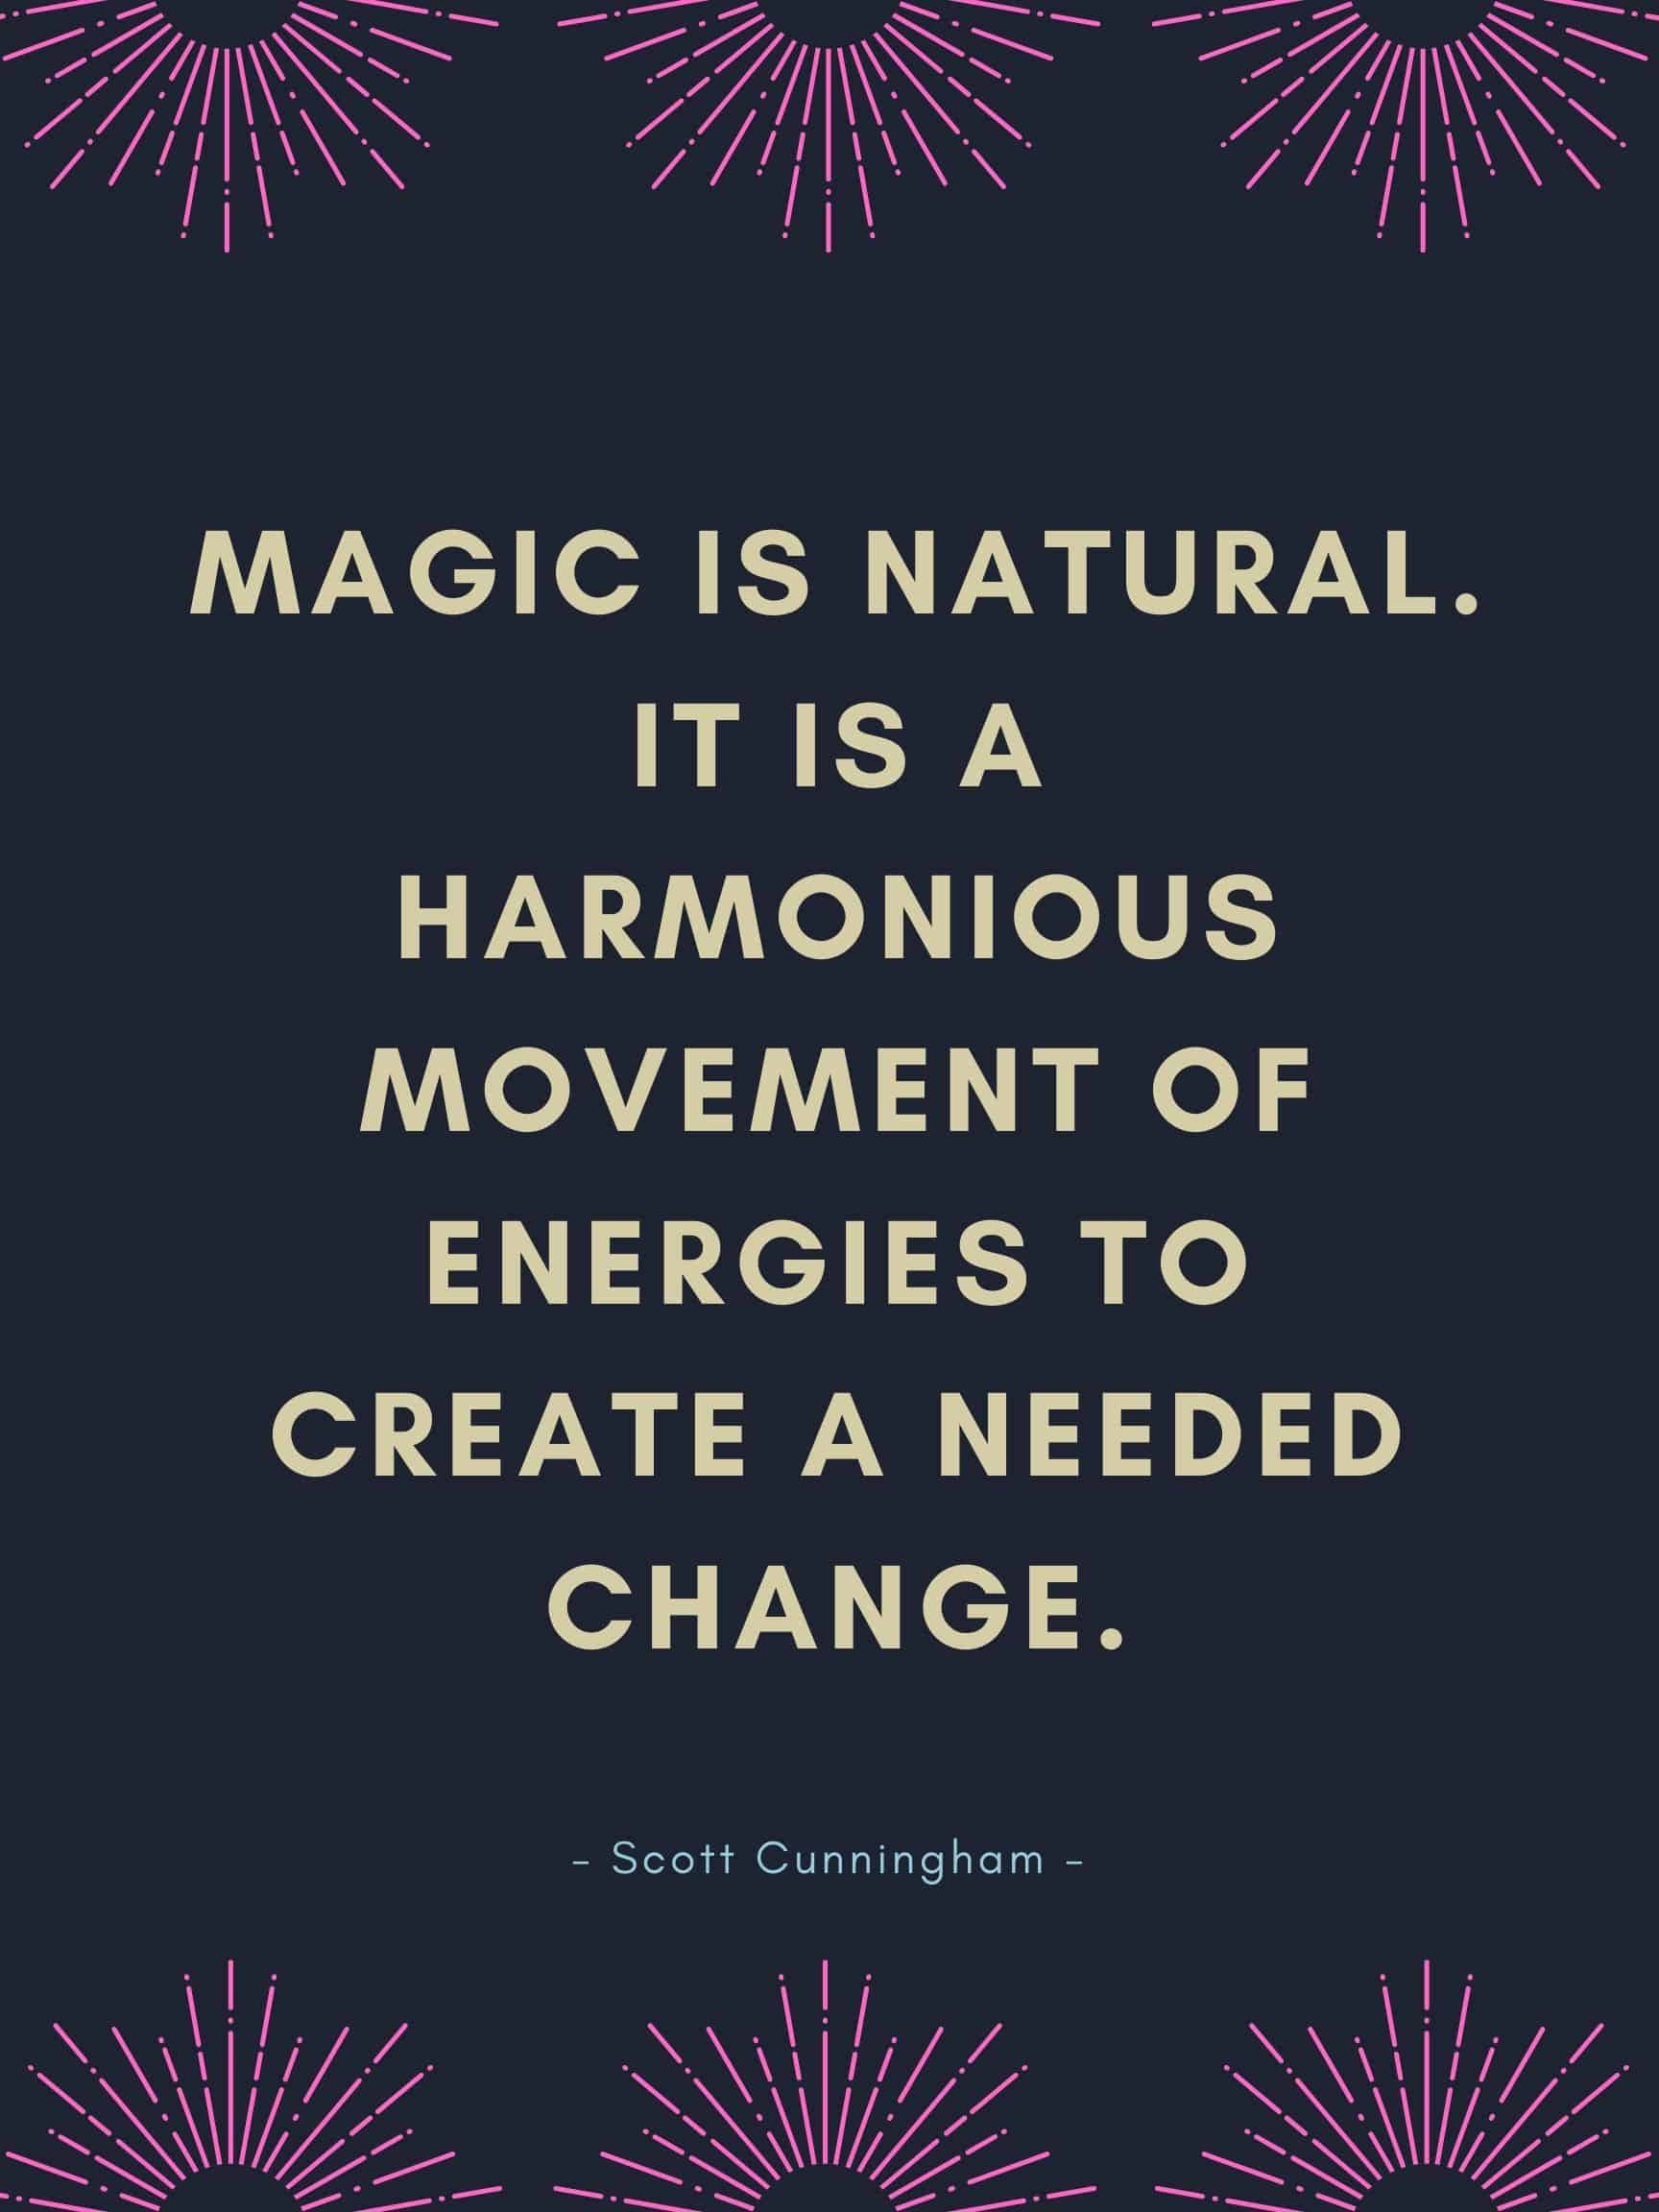 Witch Quotes - Magic is Natural